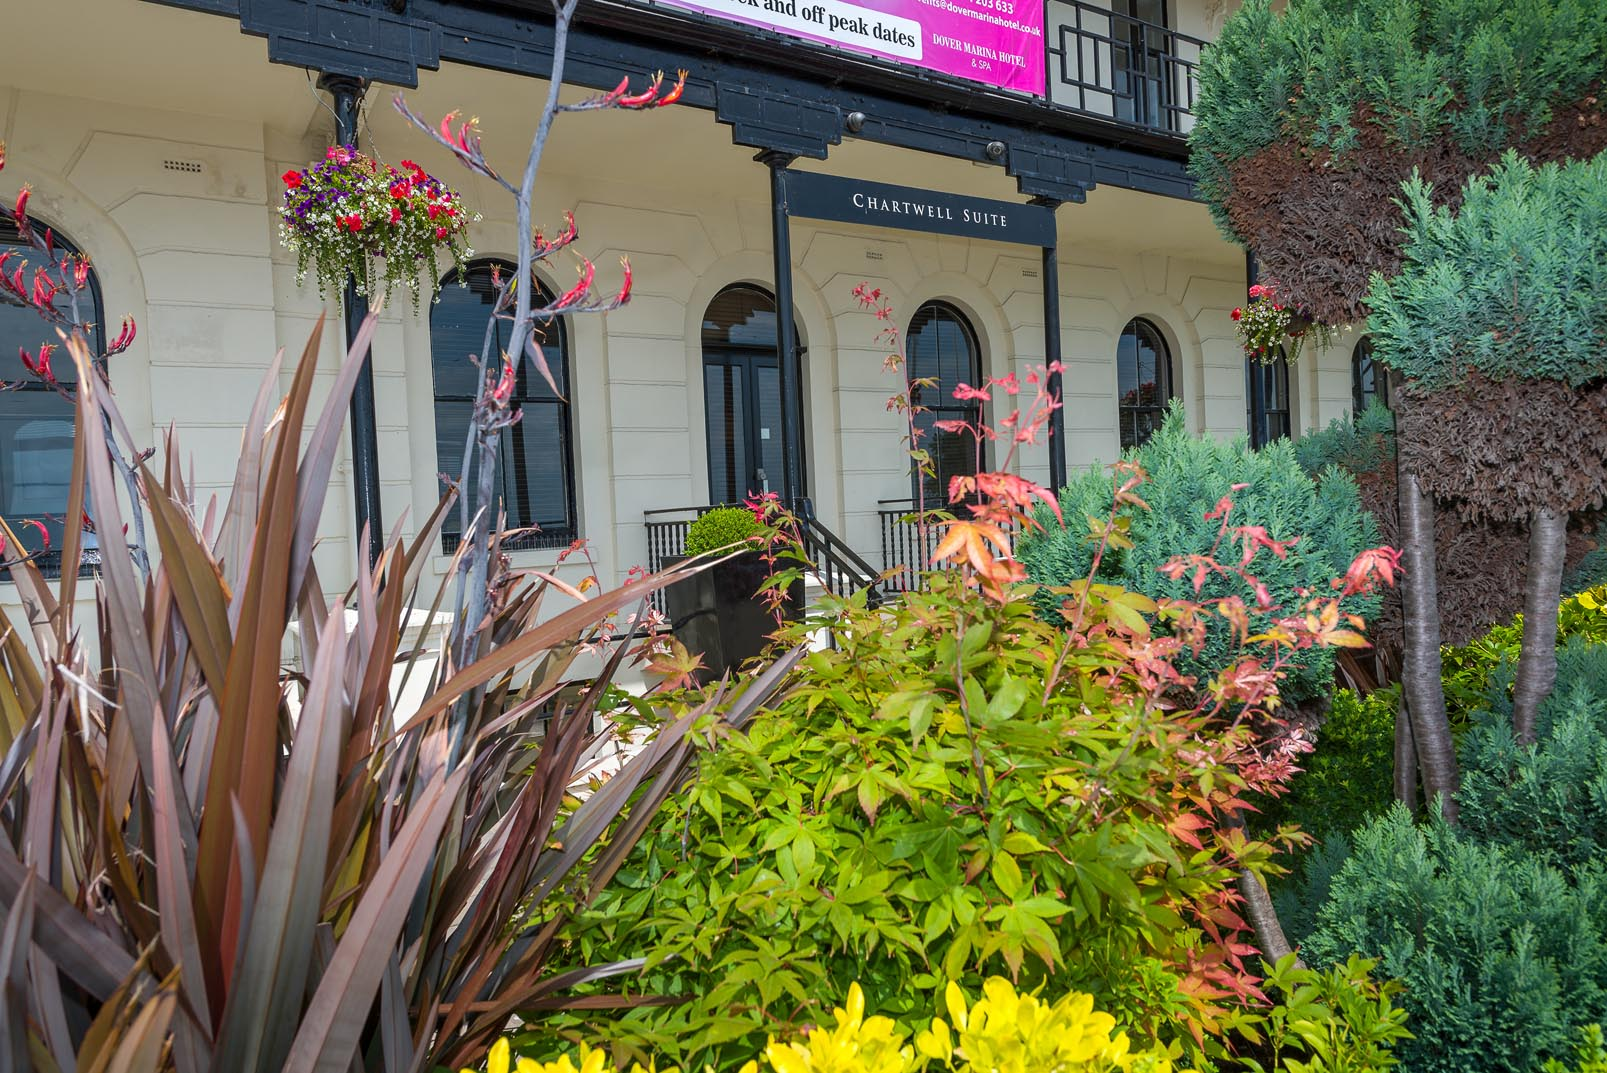 Best western plus flowers hotel best deals amp real reviews -  Dover Marina Hotel Grounds And Hotel 14 83926